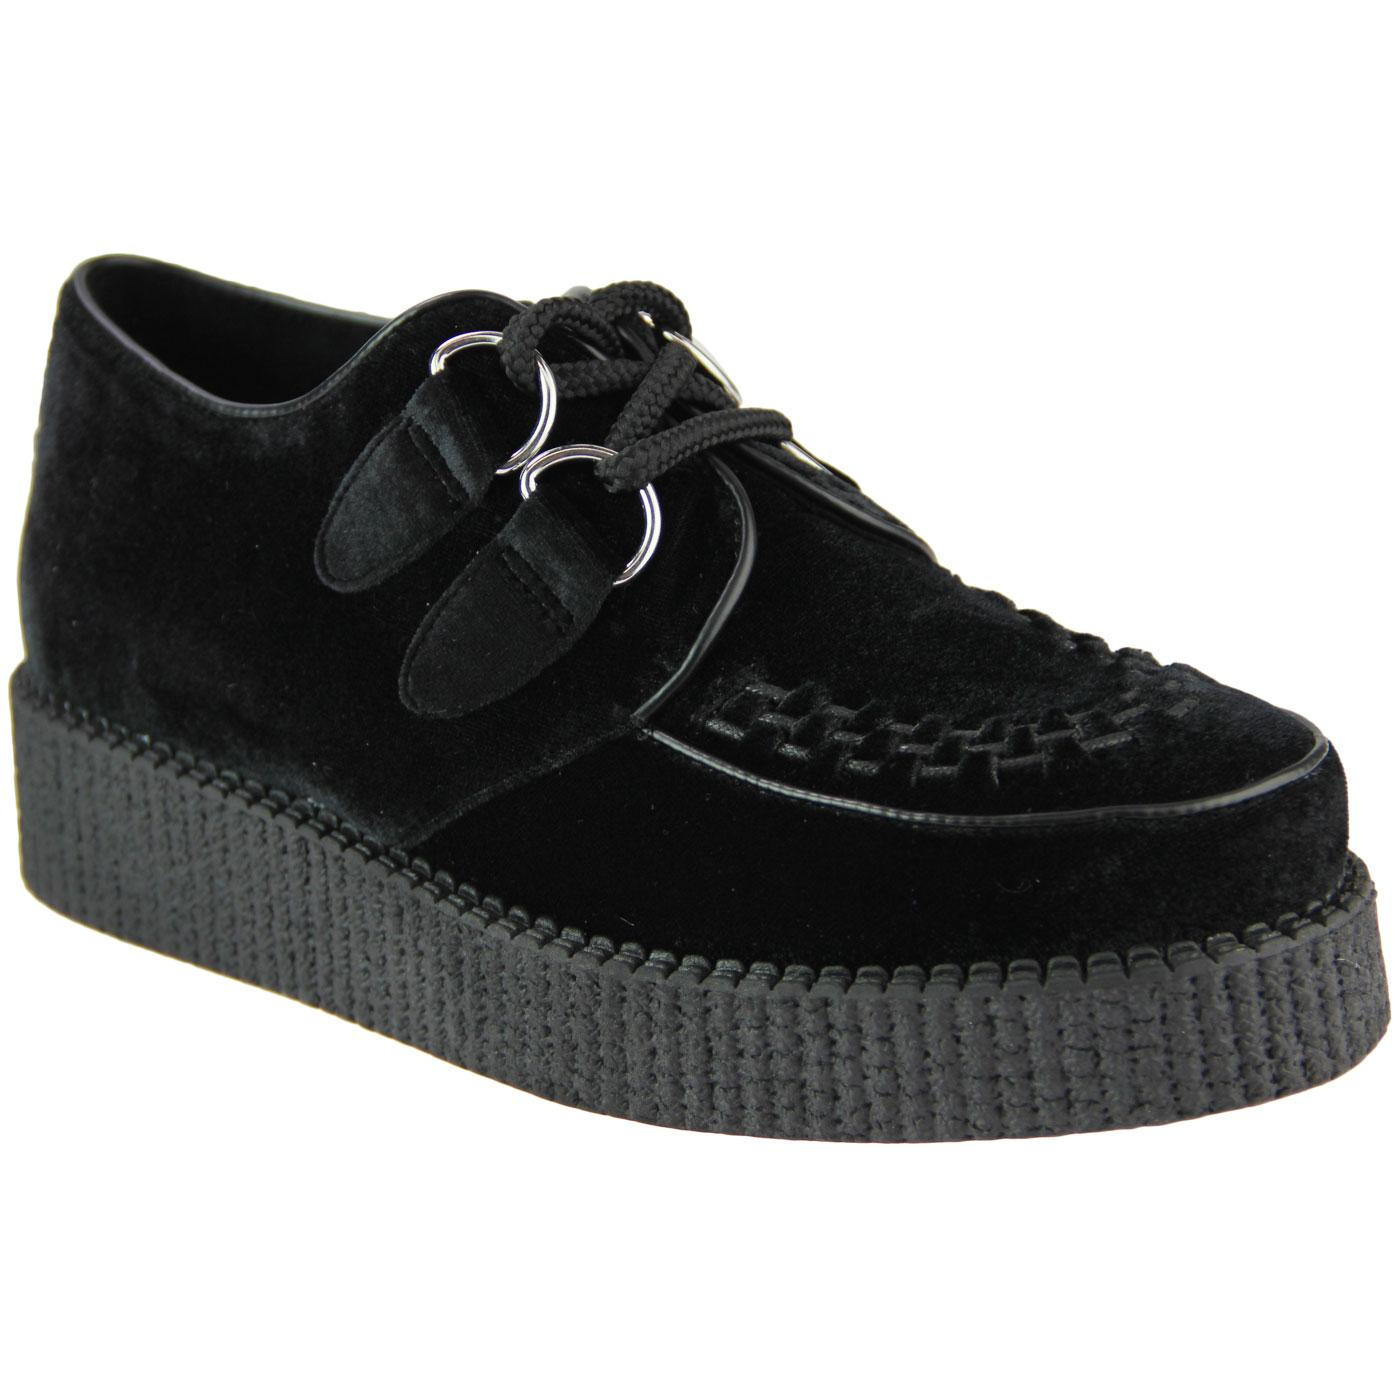 Madcap England Rumble Women's Retro Velvet Brothel Creeper Shoes